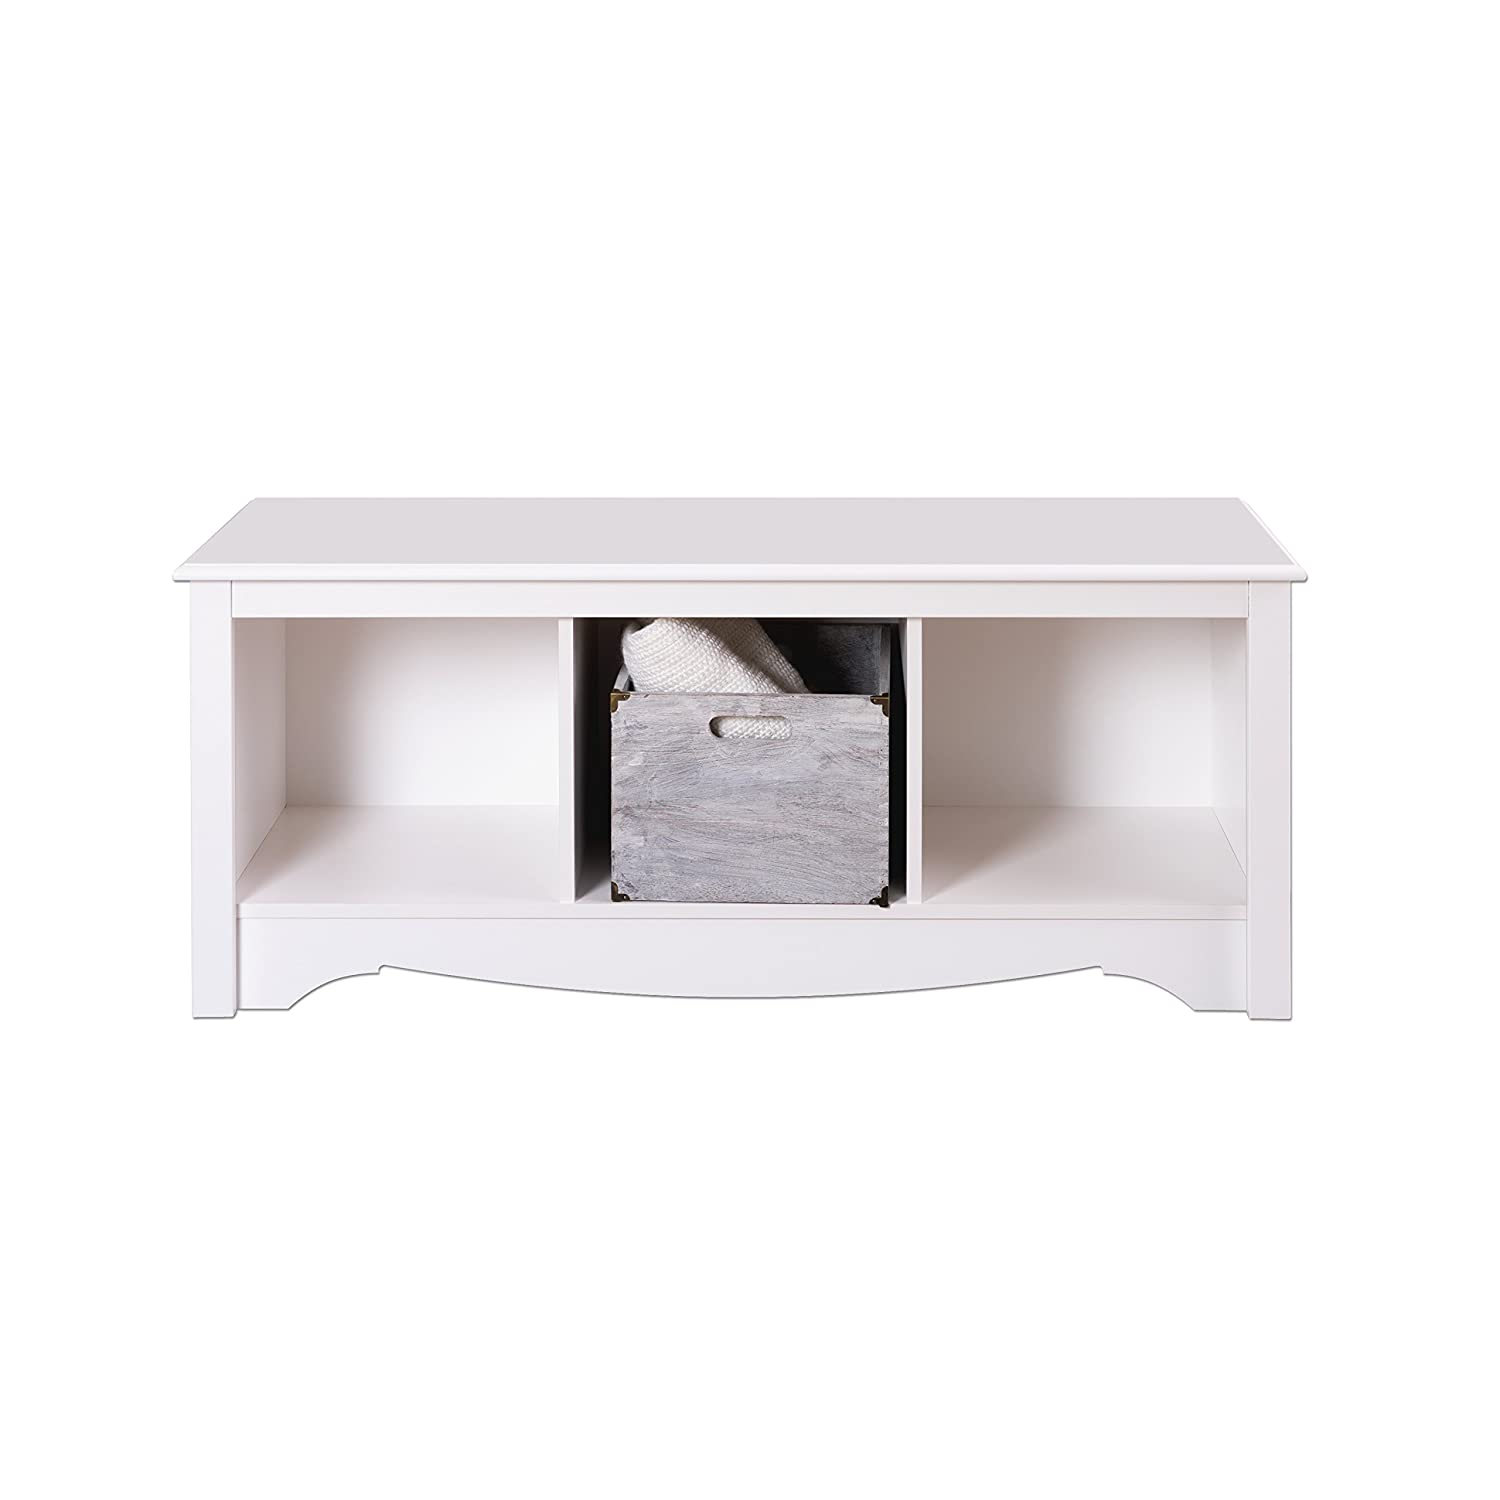 Bedroom bench with arms - White Cubbie Bench